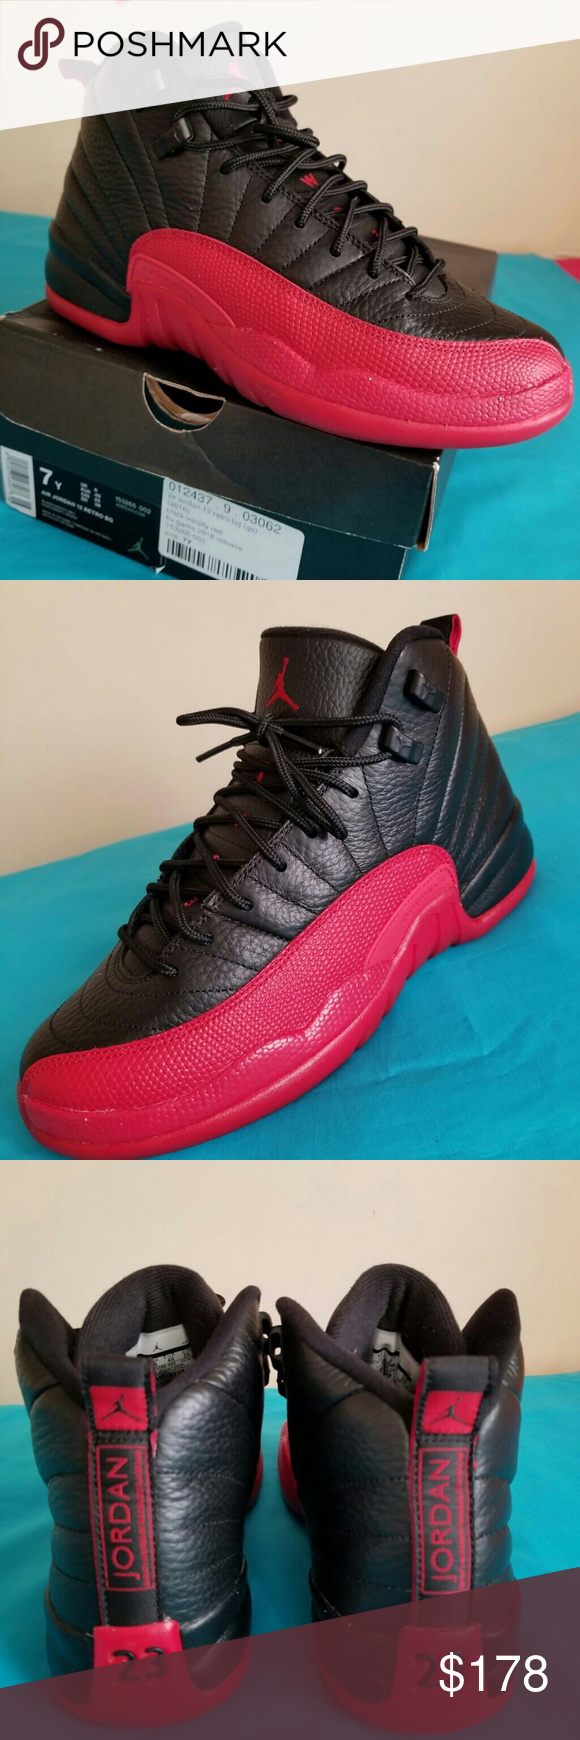 d857eaffd7ec0 Nike Air Jordan 12 FLU GAME size 7 Men Shoes is in excellent shape and  condition